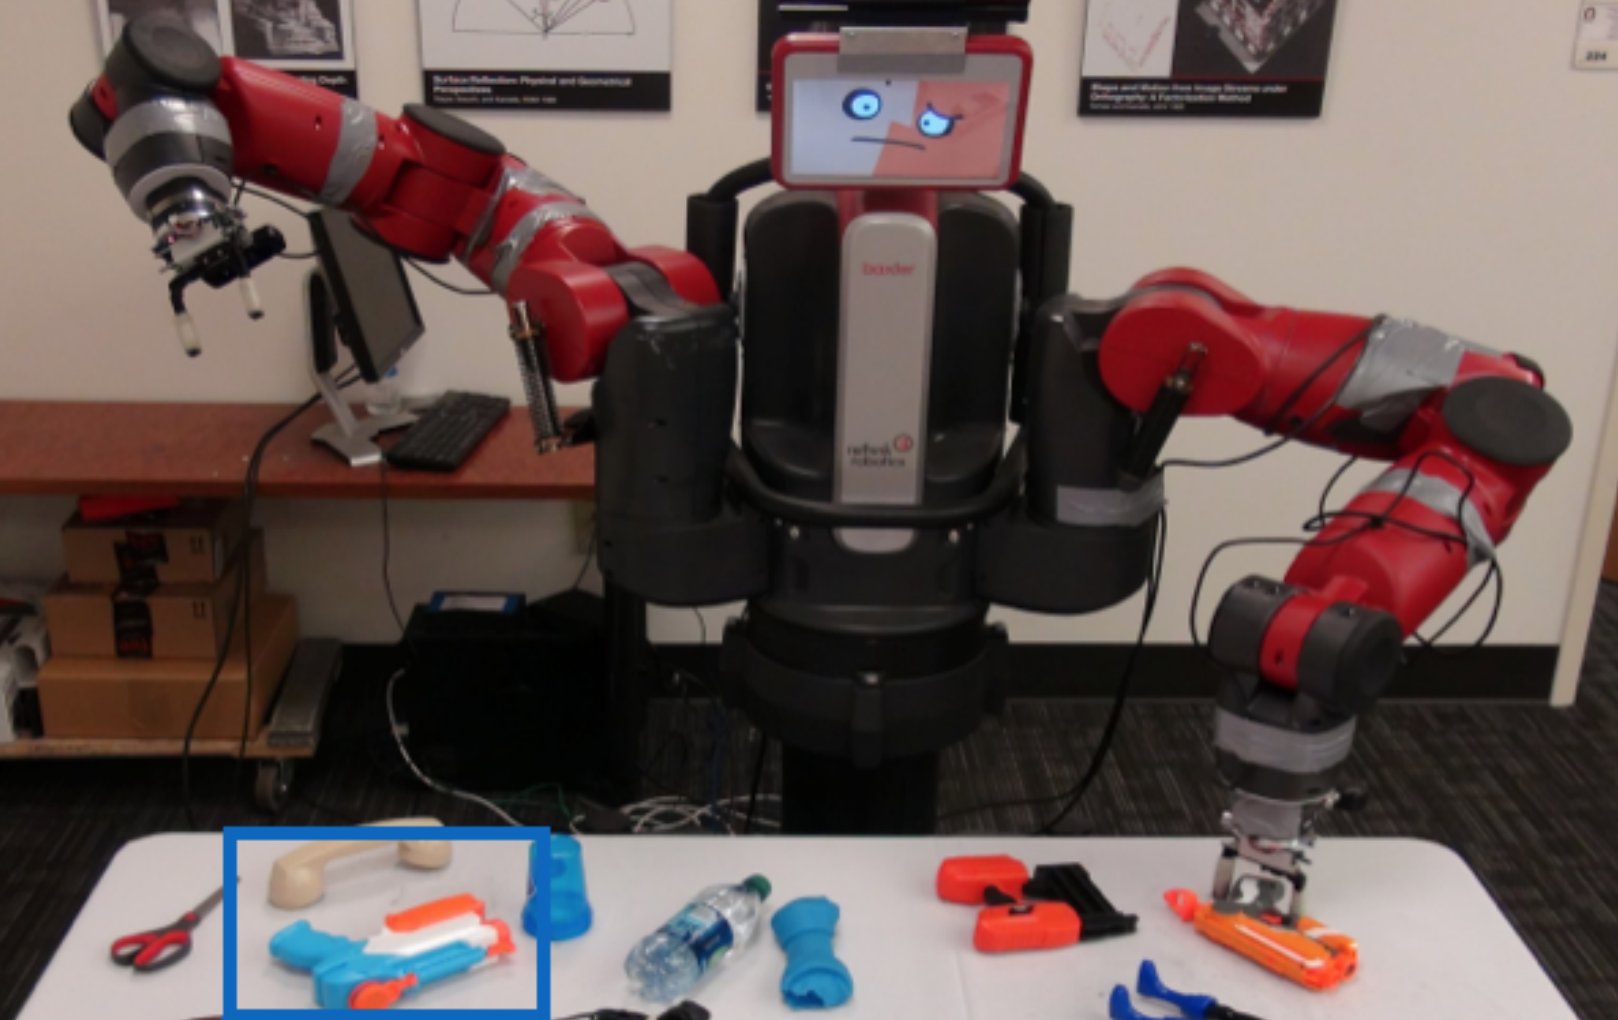 It Took This Robot10 Days To Learn How To Grasp Objects From Scratch